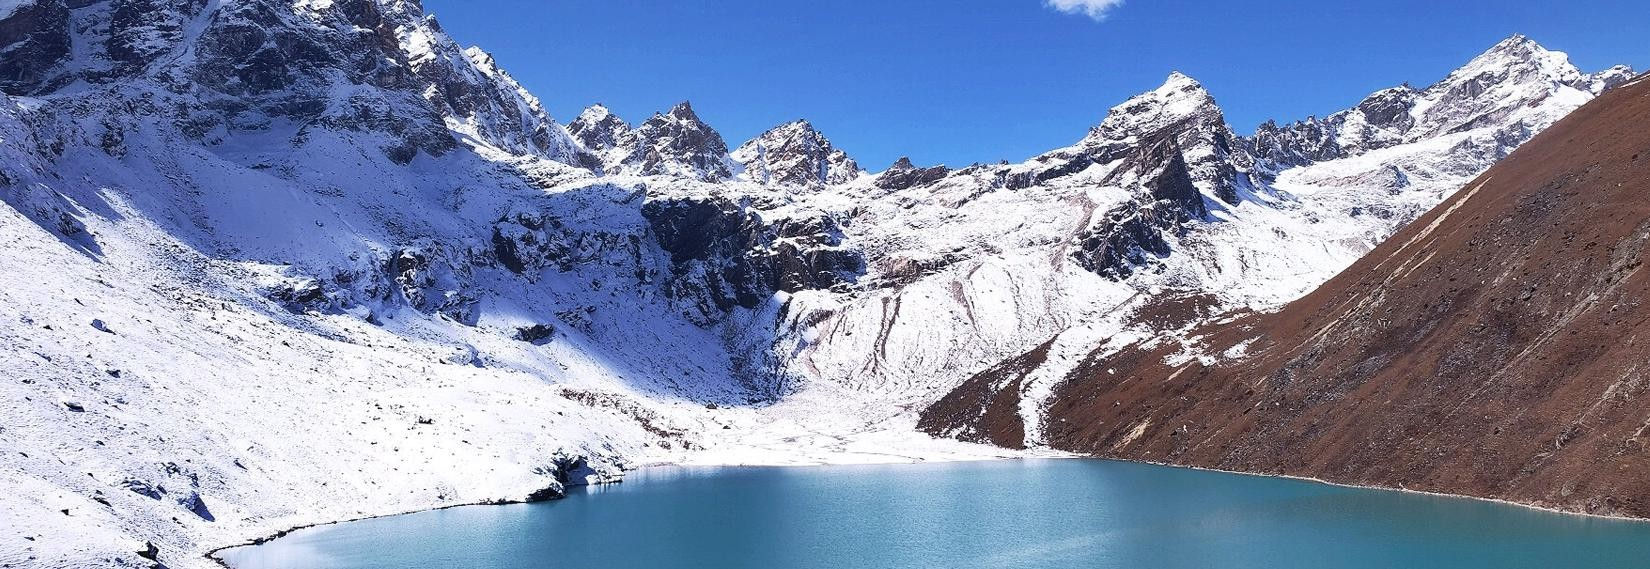 Gokyo Lake in Khumbu